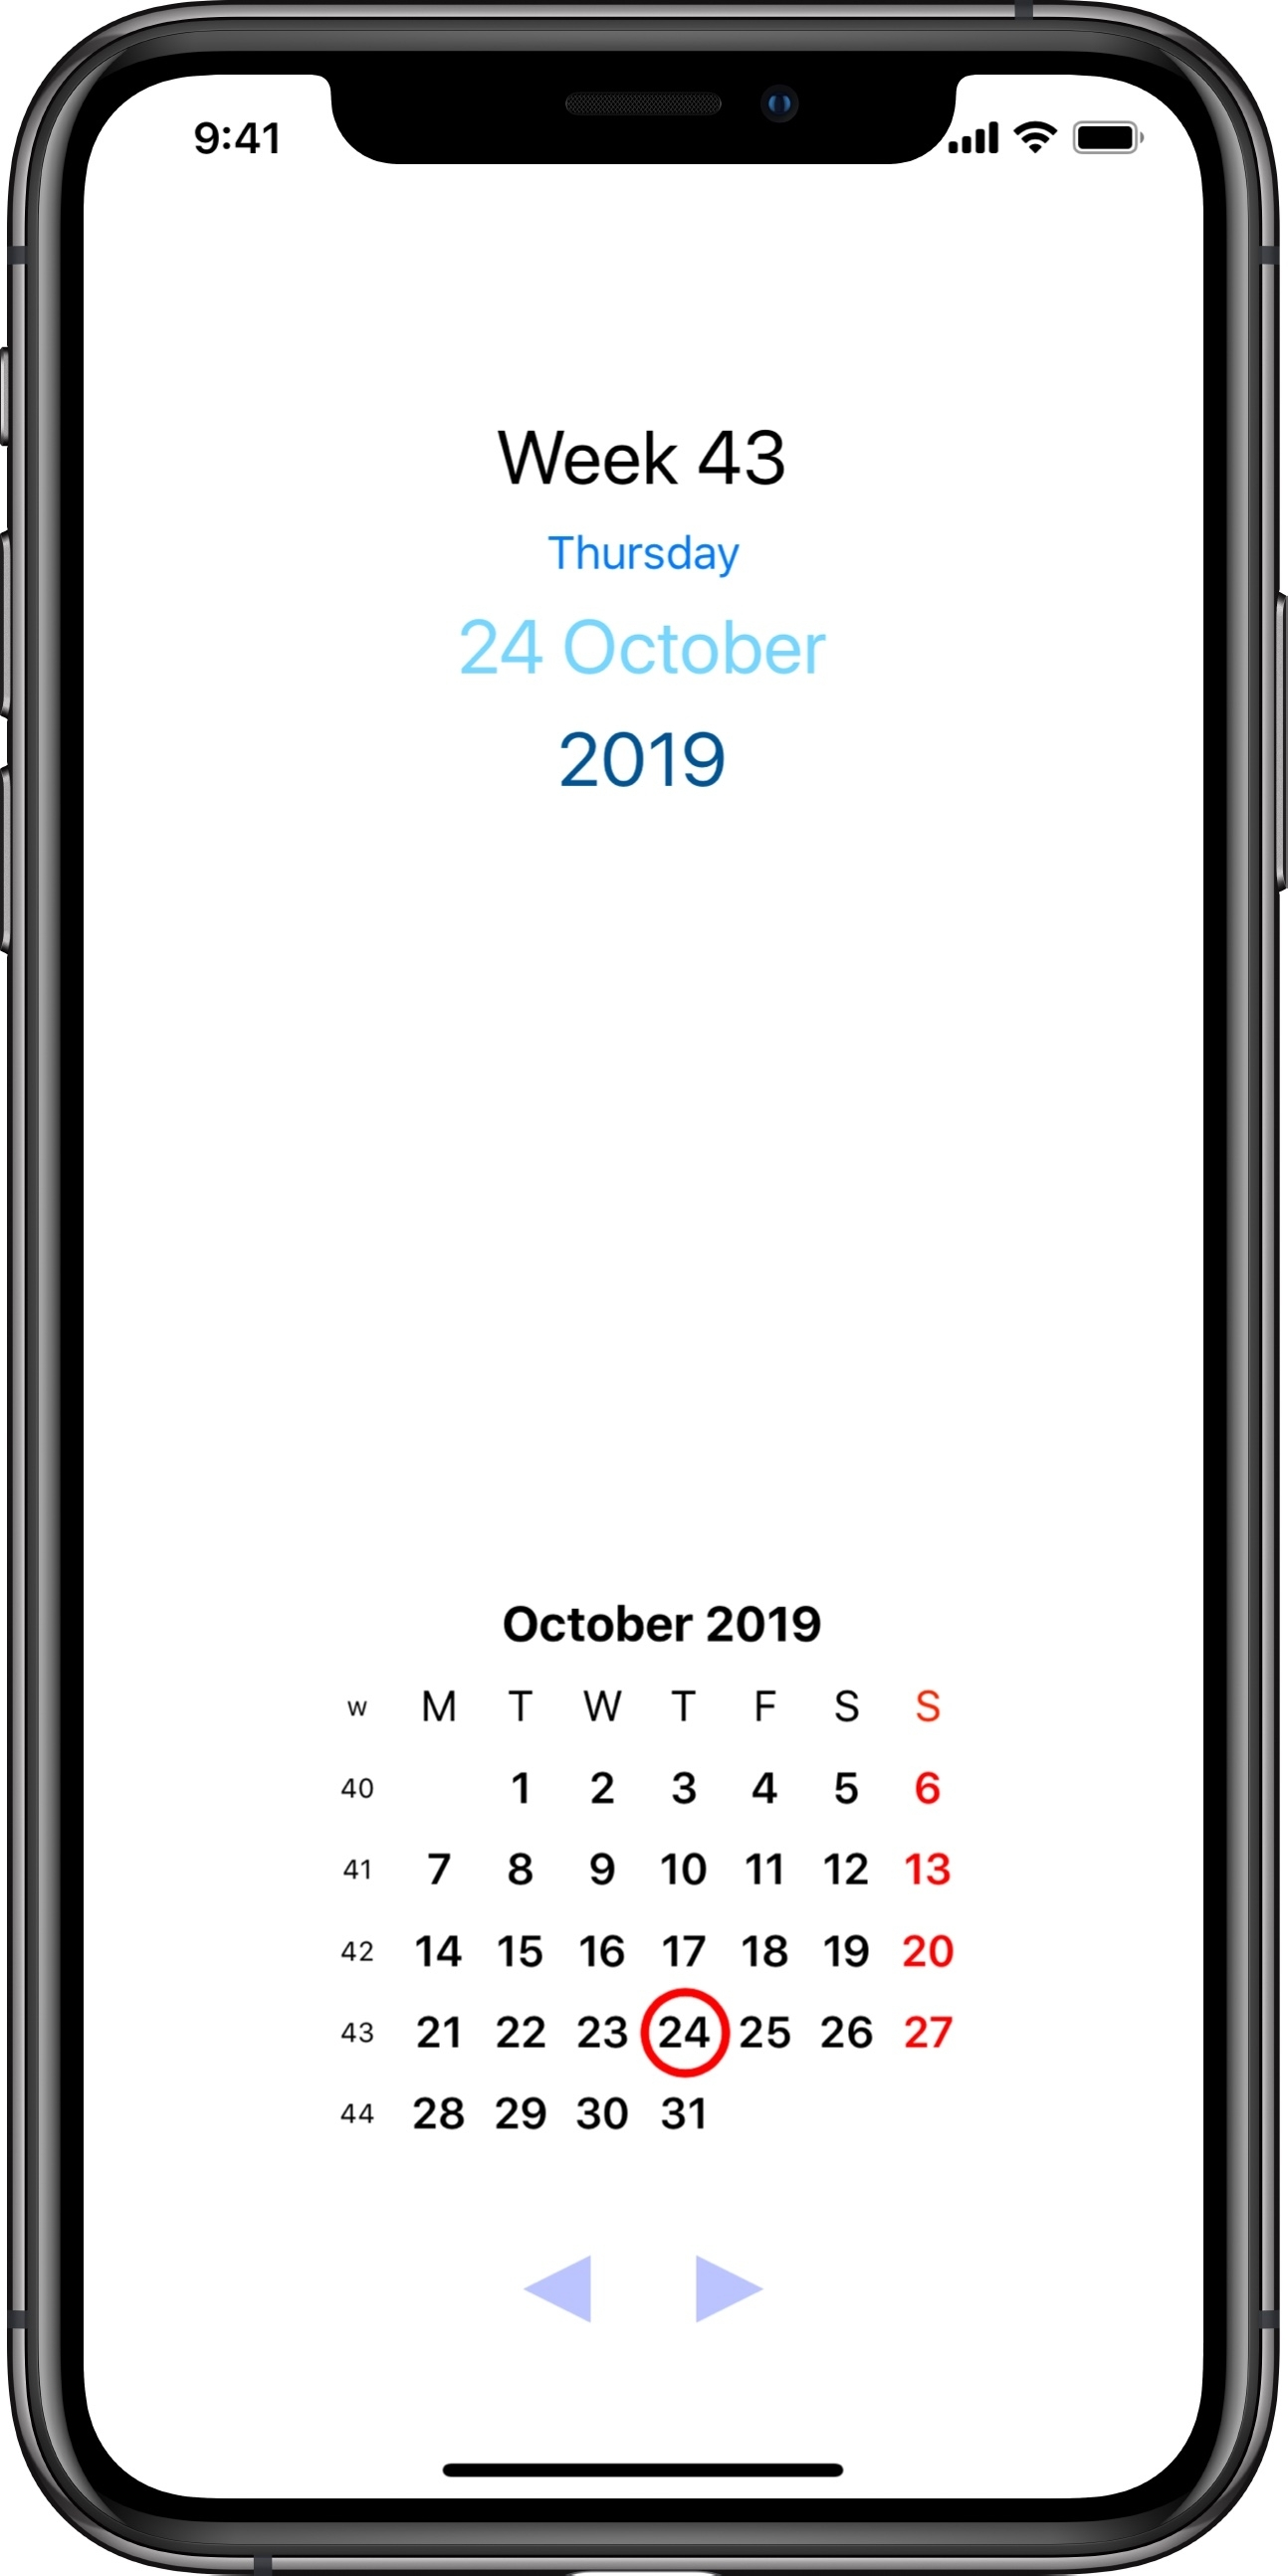 Paws Week - Get A Week Number Widget For Iphone And Apple Watch